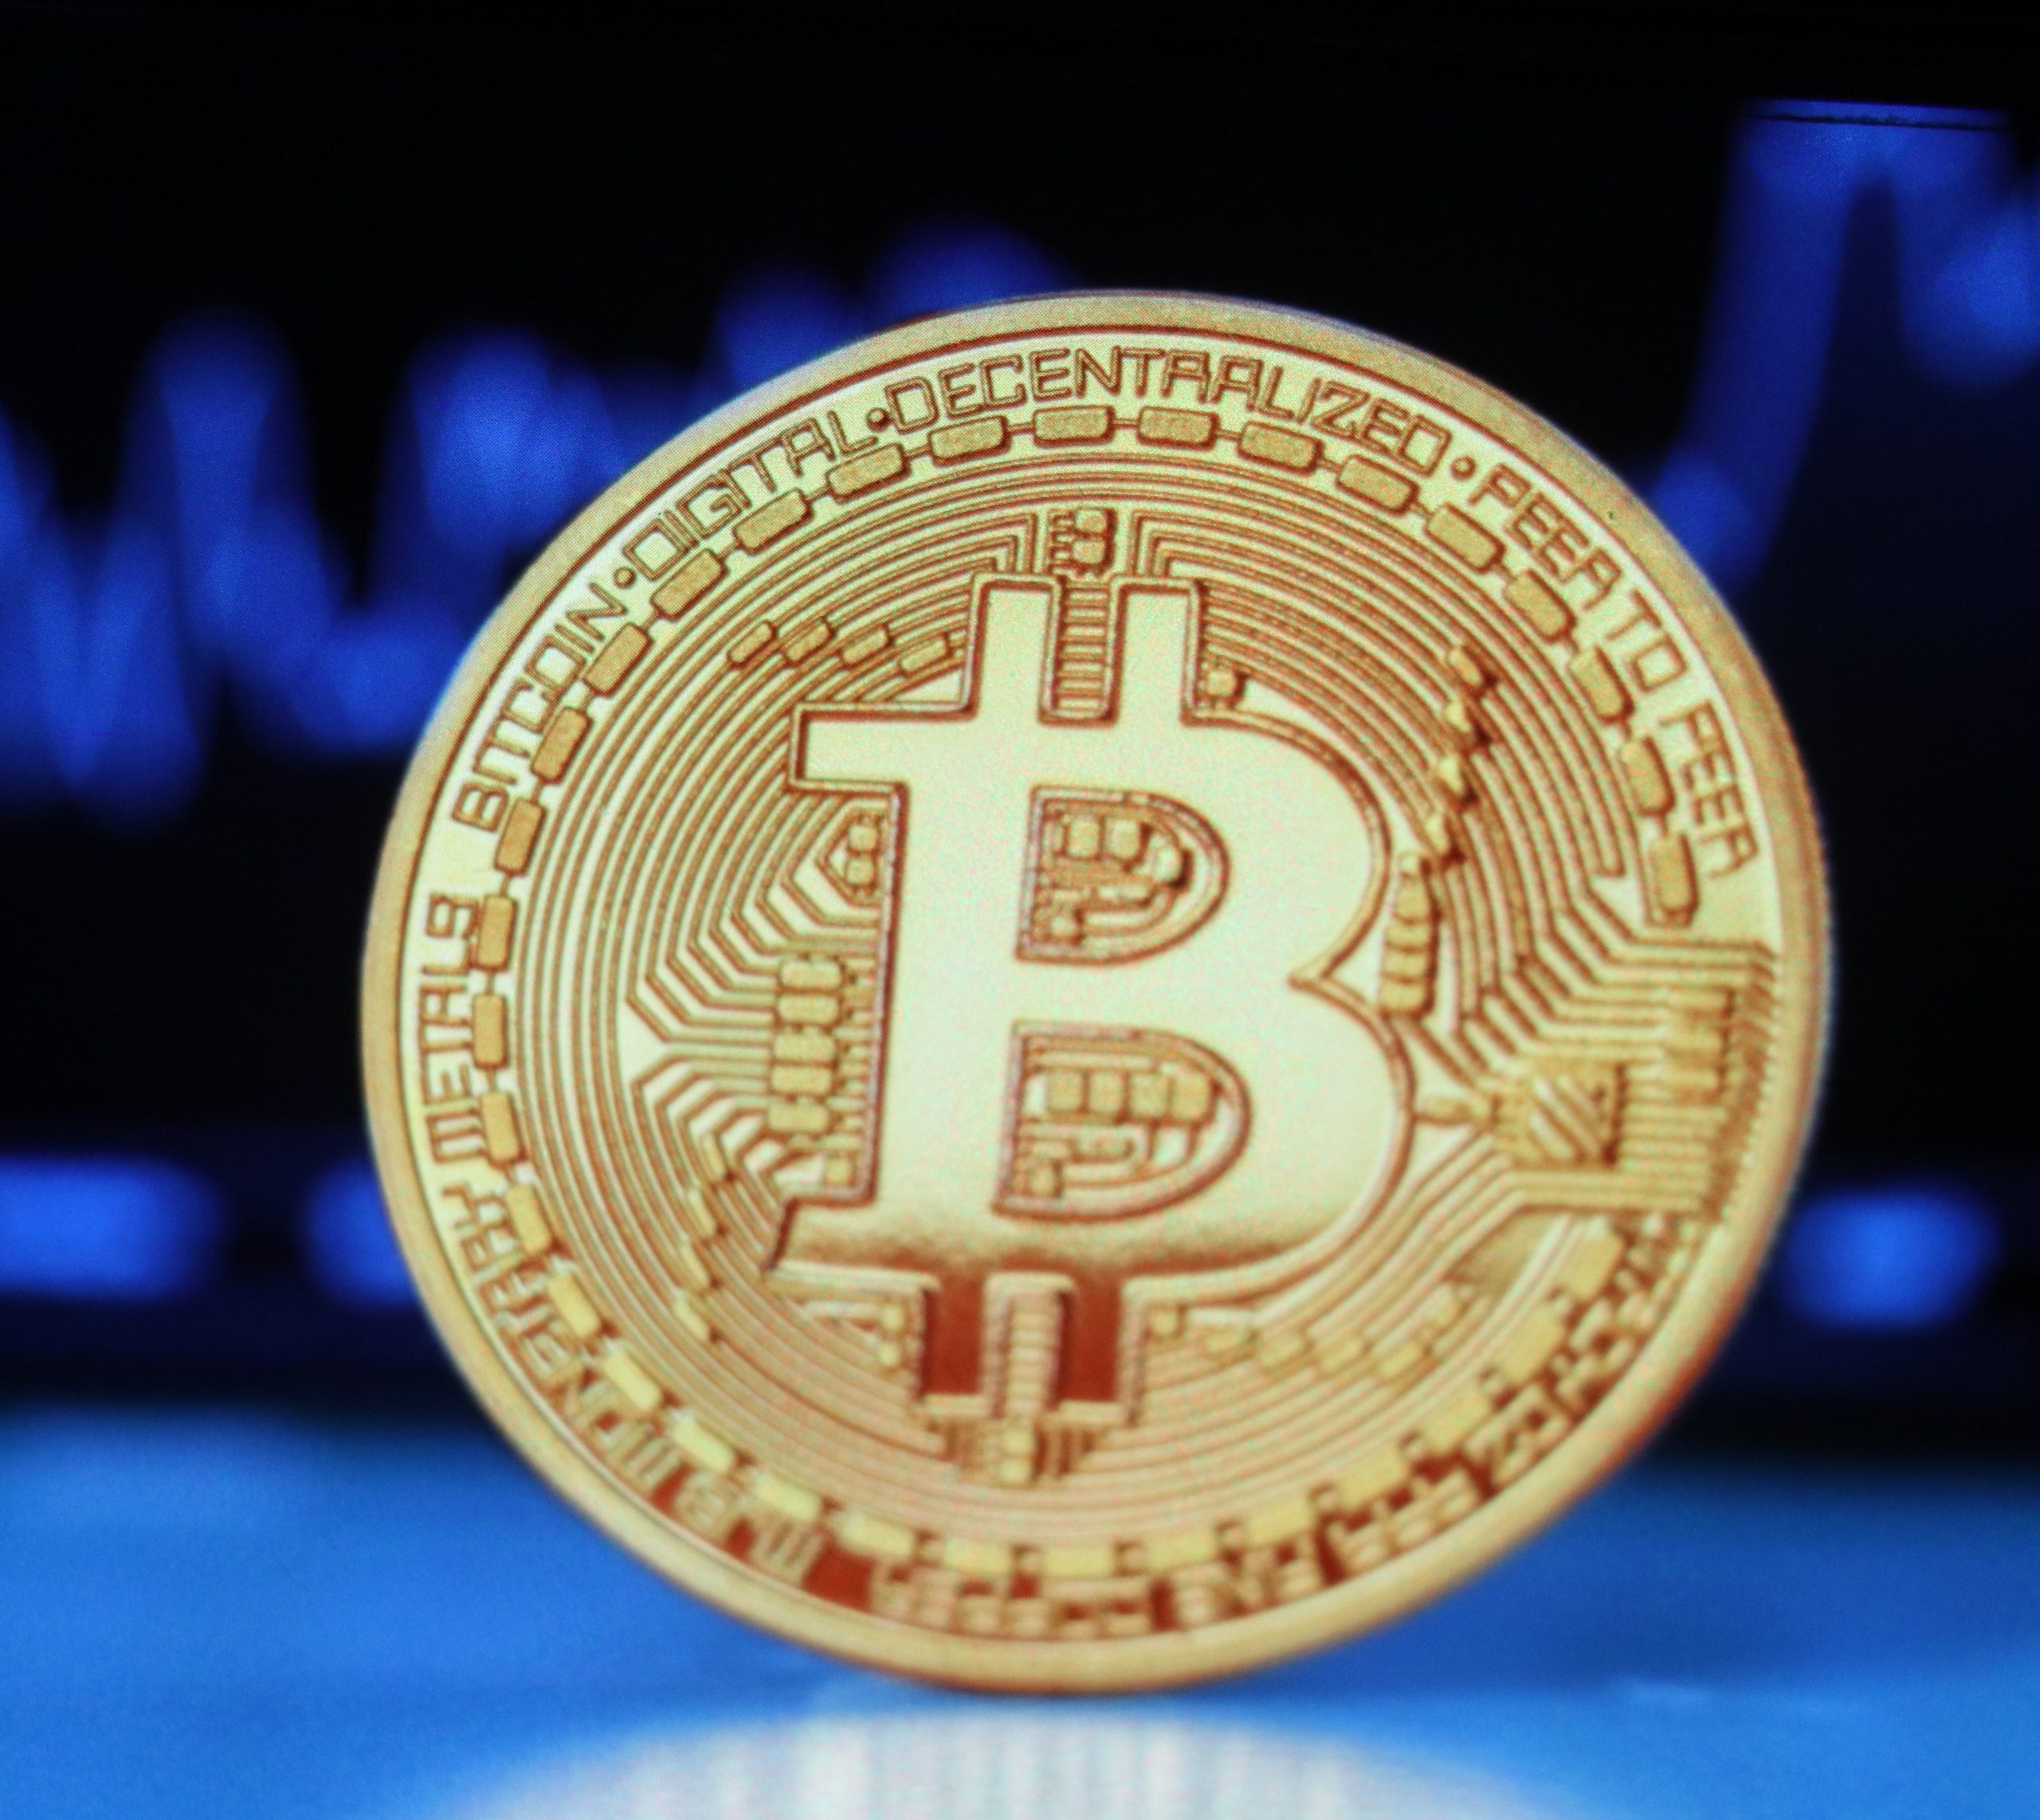 A bitcoin on blue background.